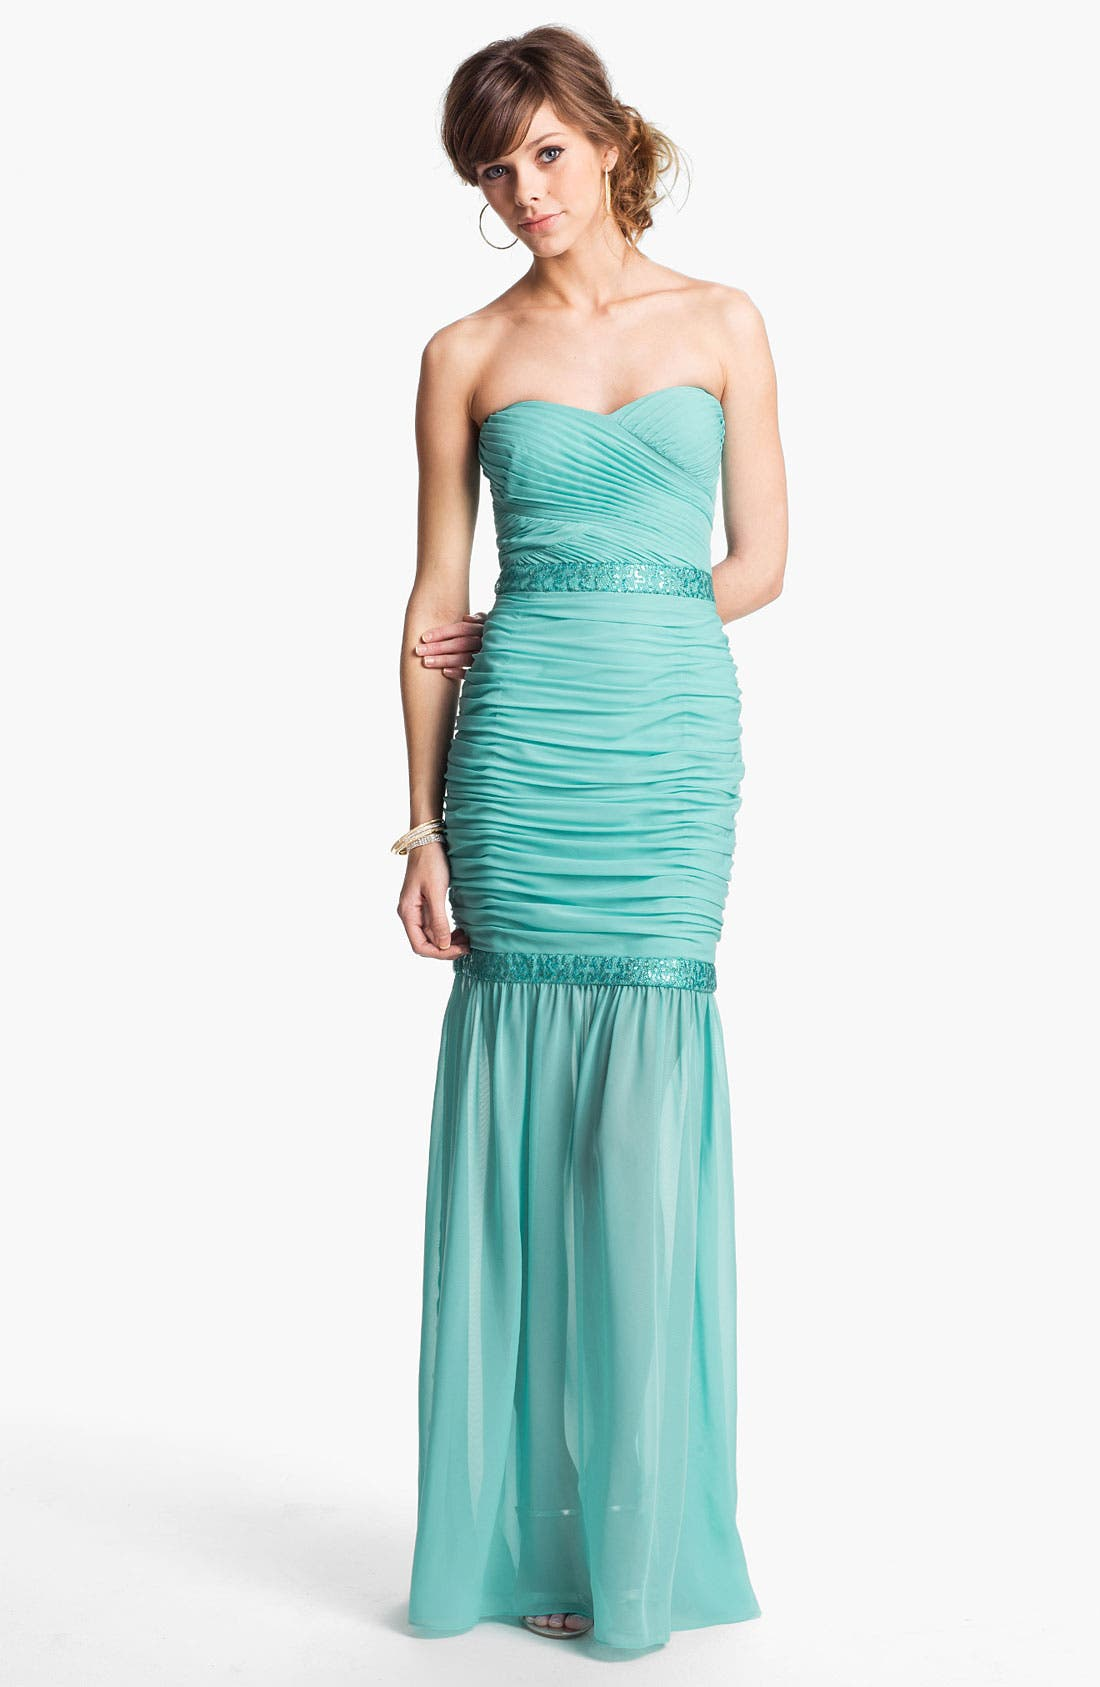 Main Image - Hailey by Adrianna Papell Embellished Chiffon Mermaid Dress (Online Only)